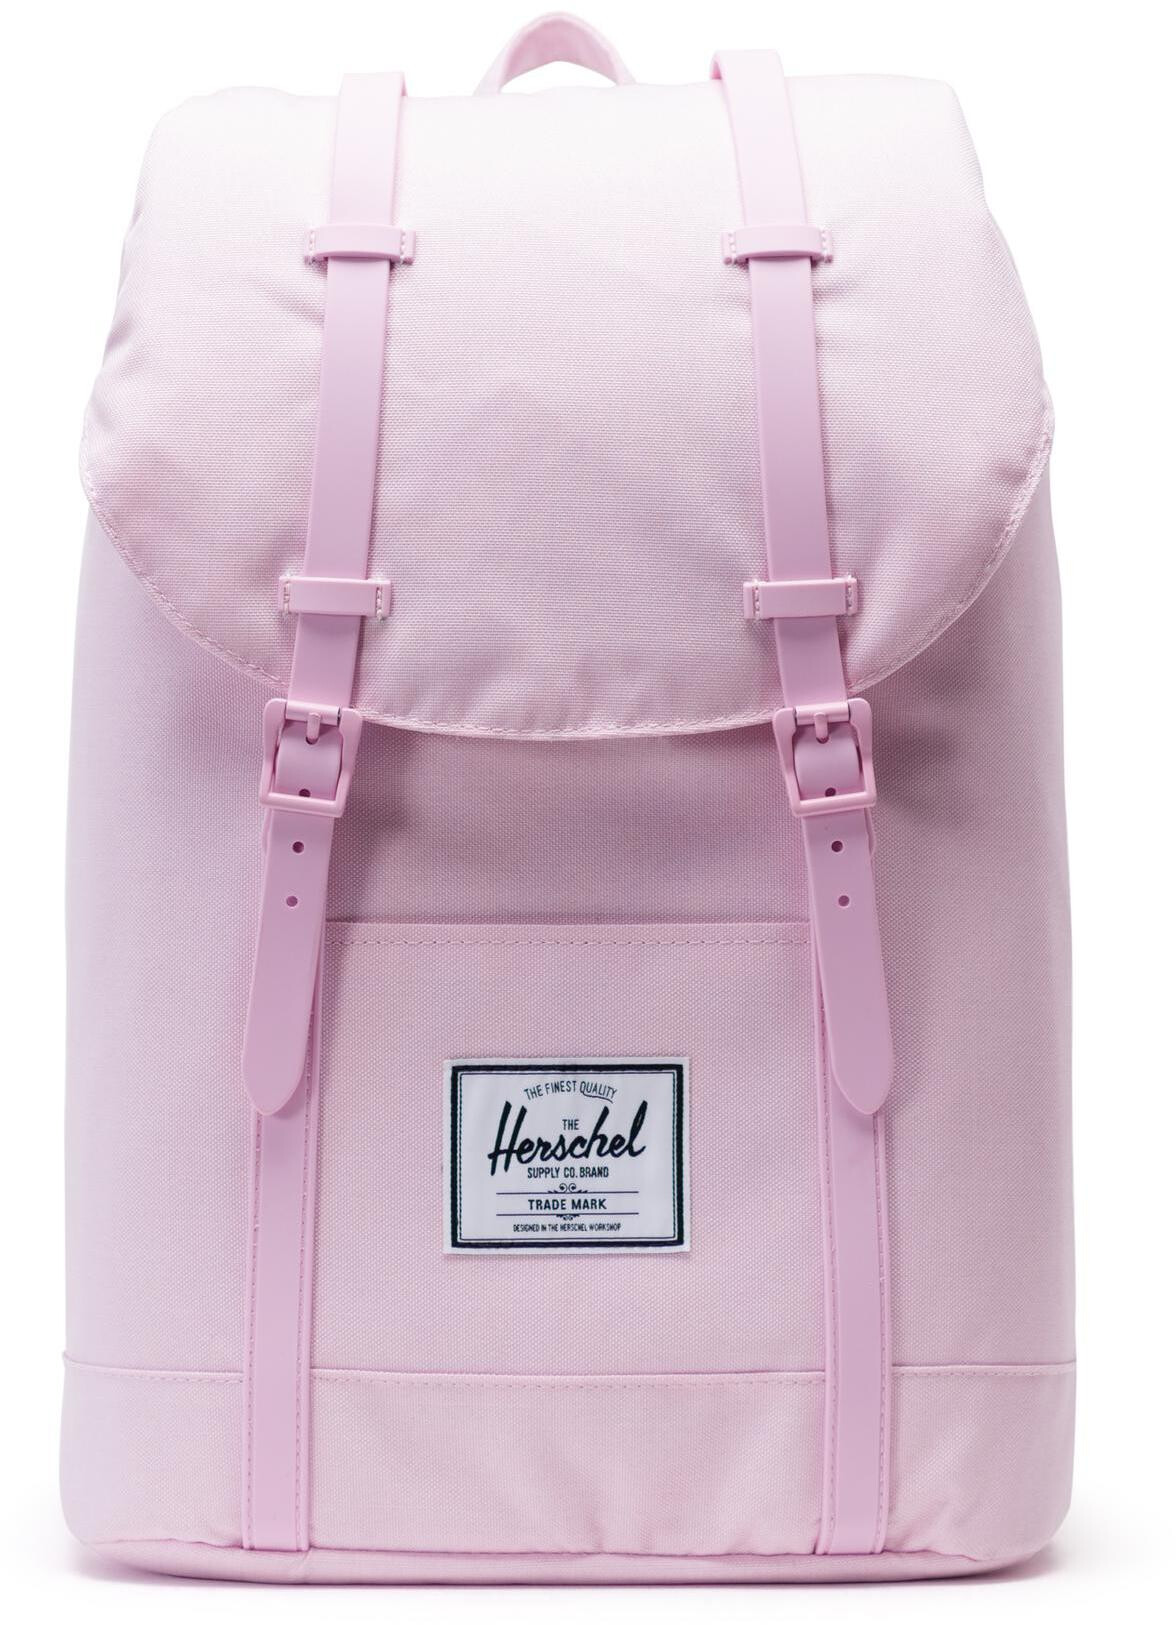 Herschel Retreat Rygsæk 19,5l, pink lady crosshatch (2019) | Travel bags